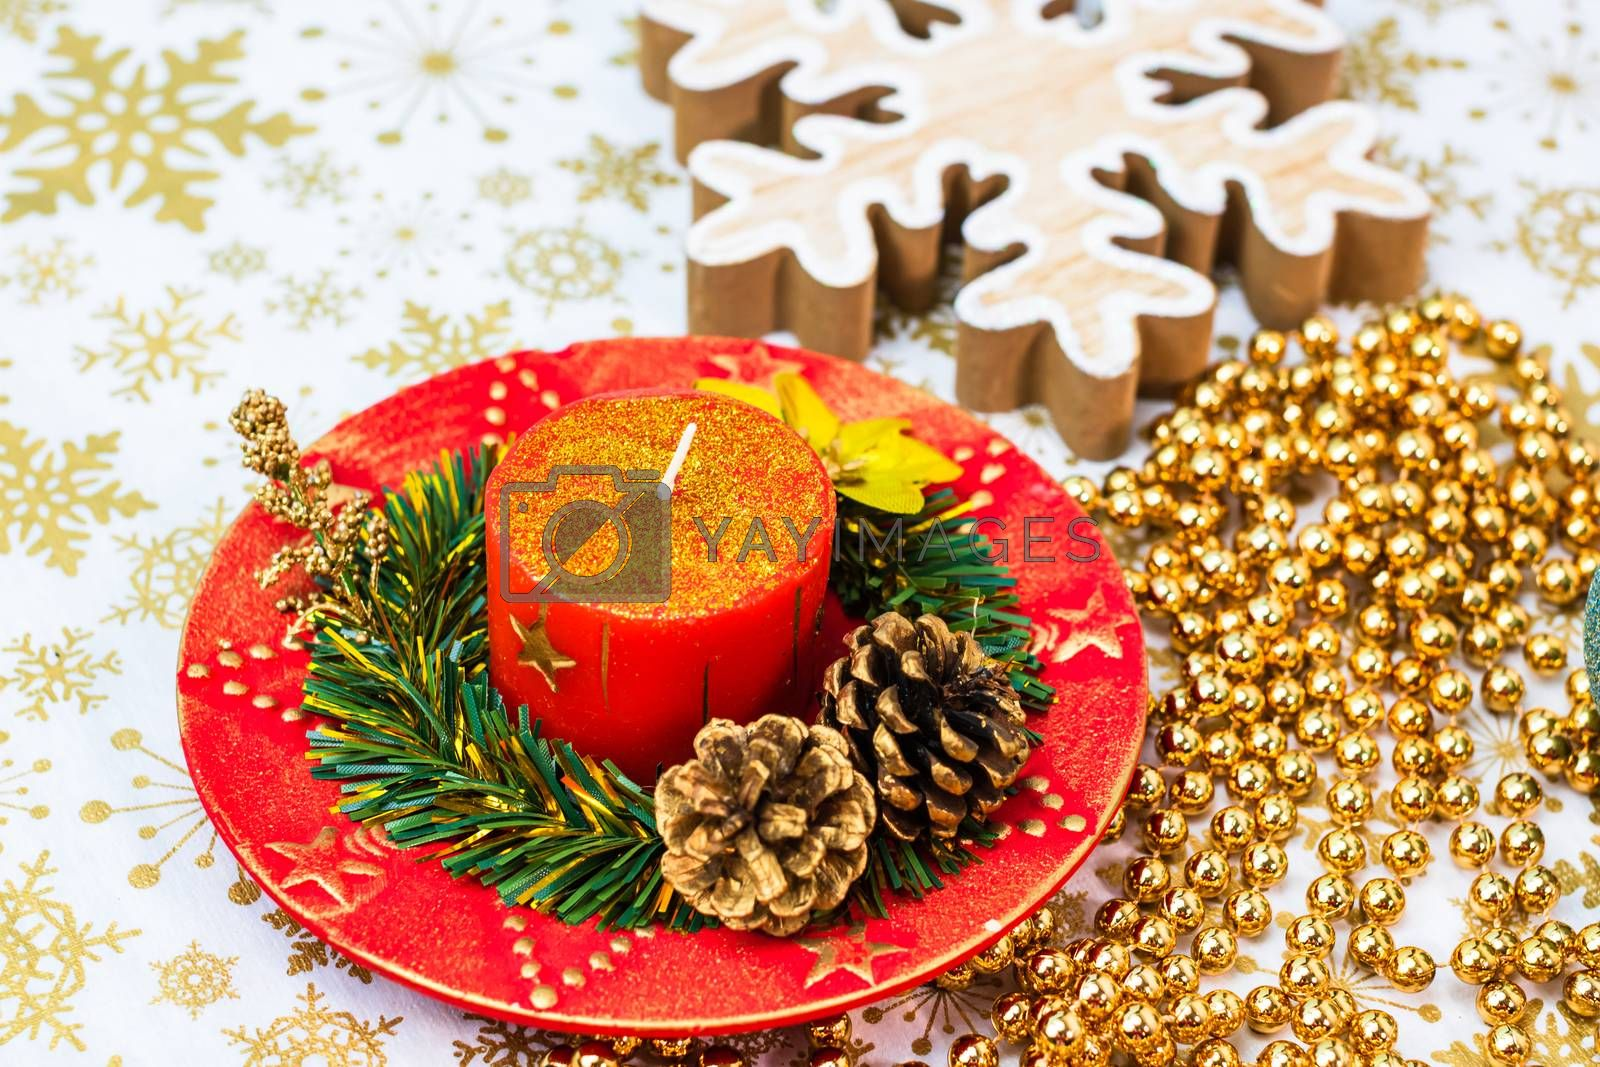 Close up of decorated christmas red candle isolated. Christmas composition with seasonal decorations and ornaments, colorful christmas background christmassy mood concept.